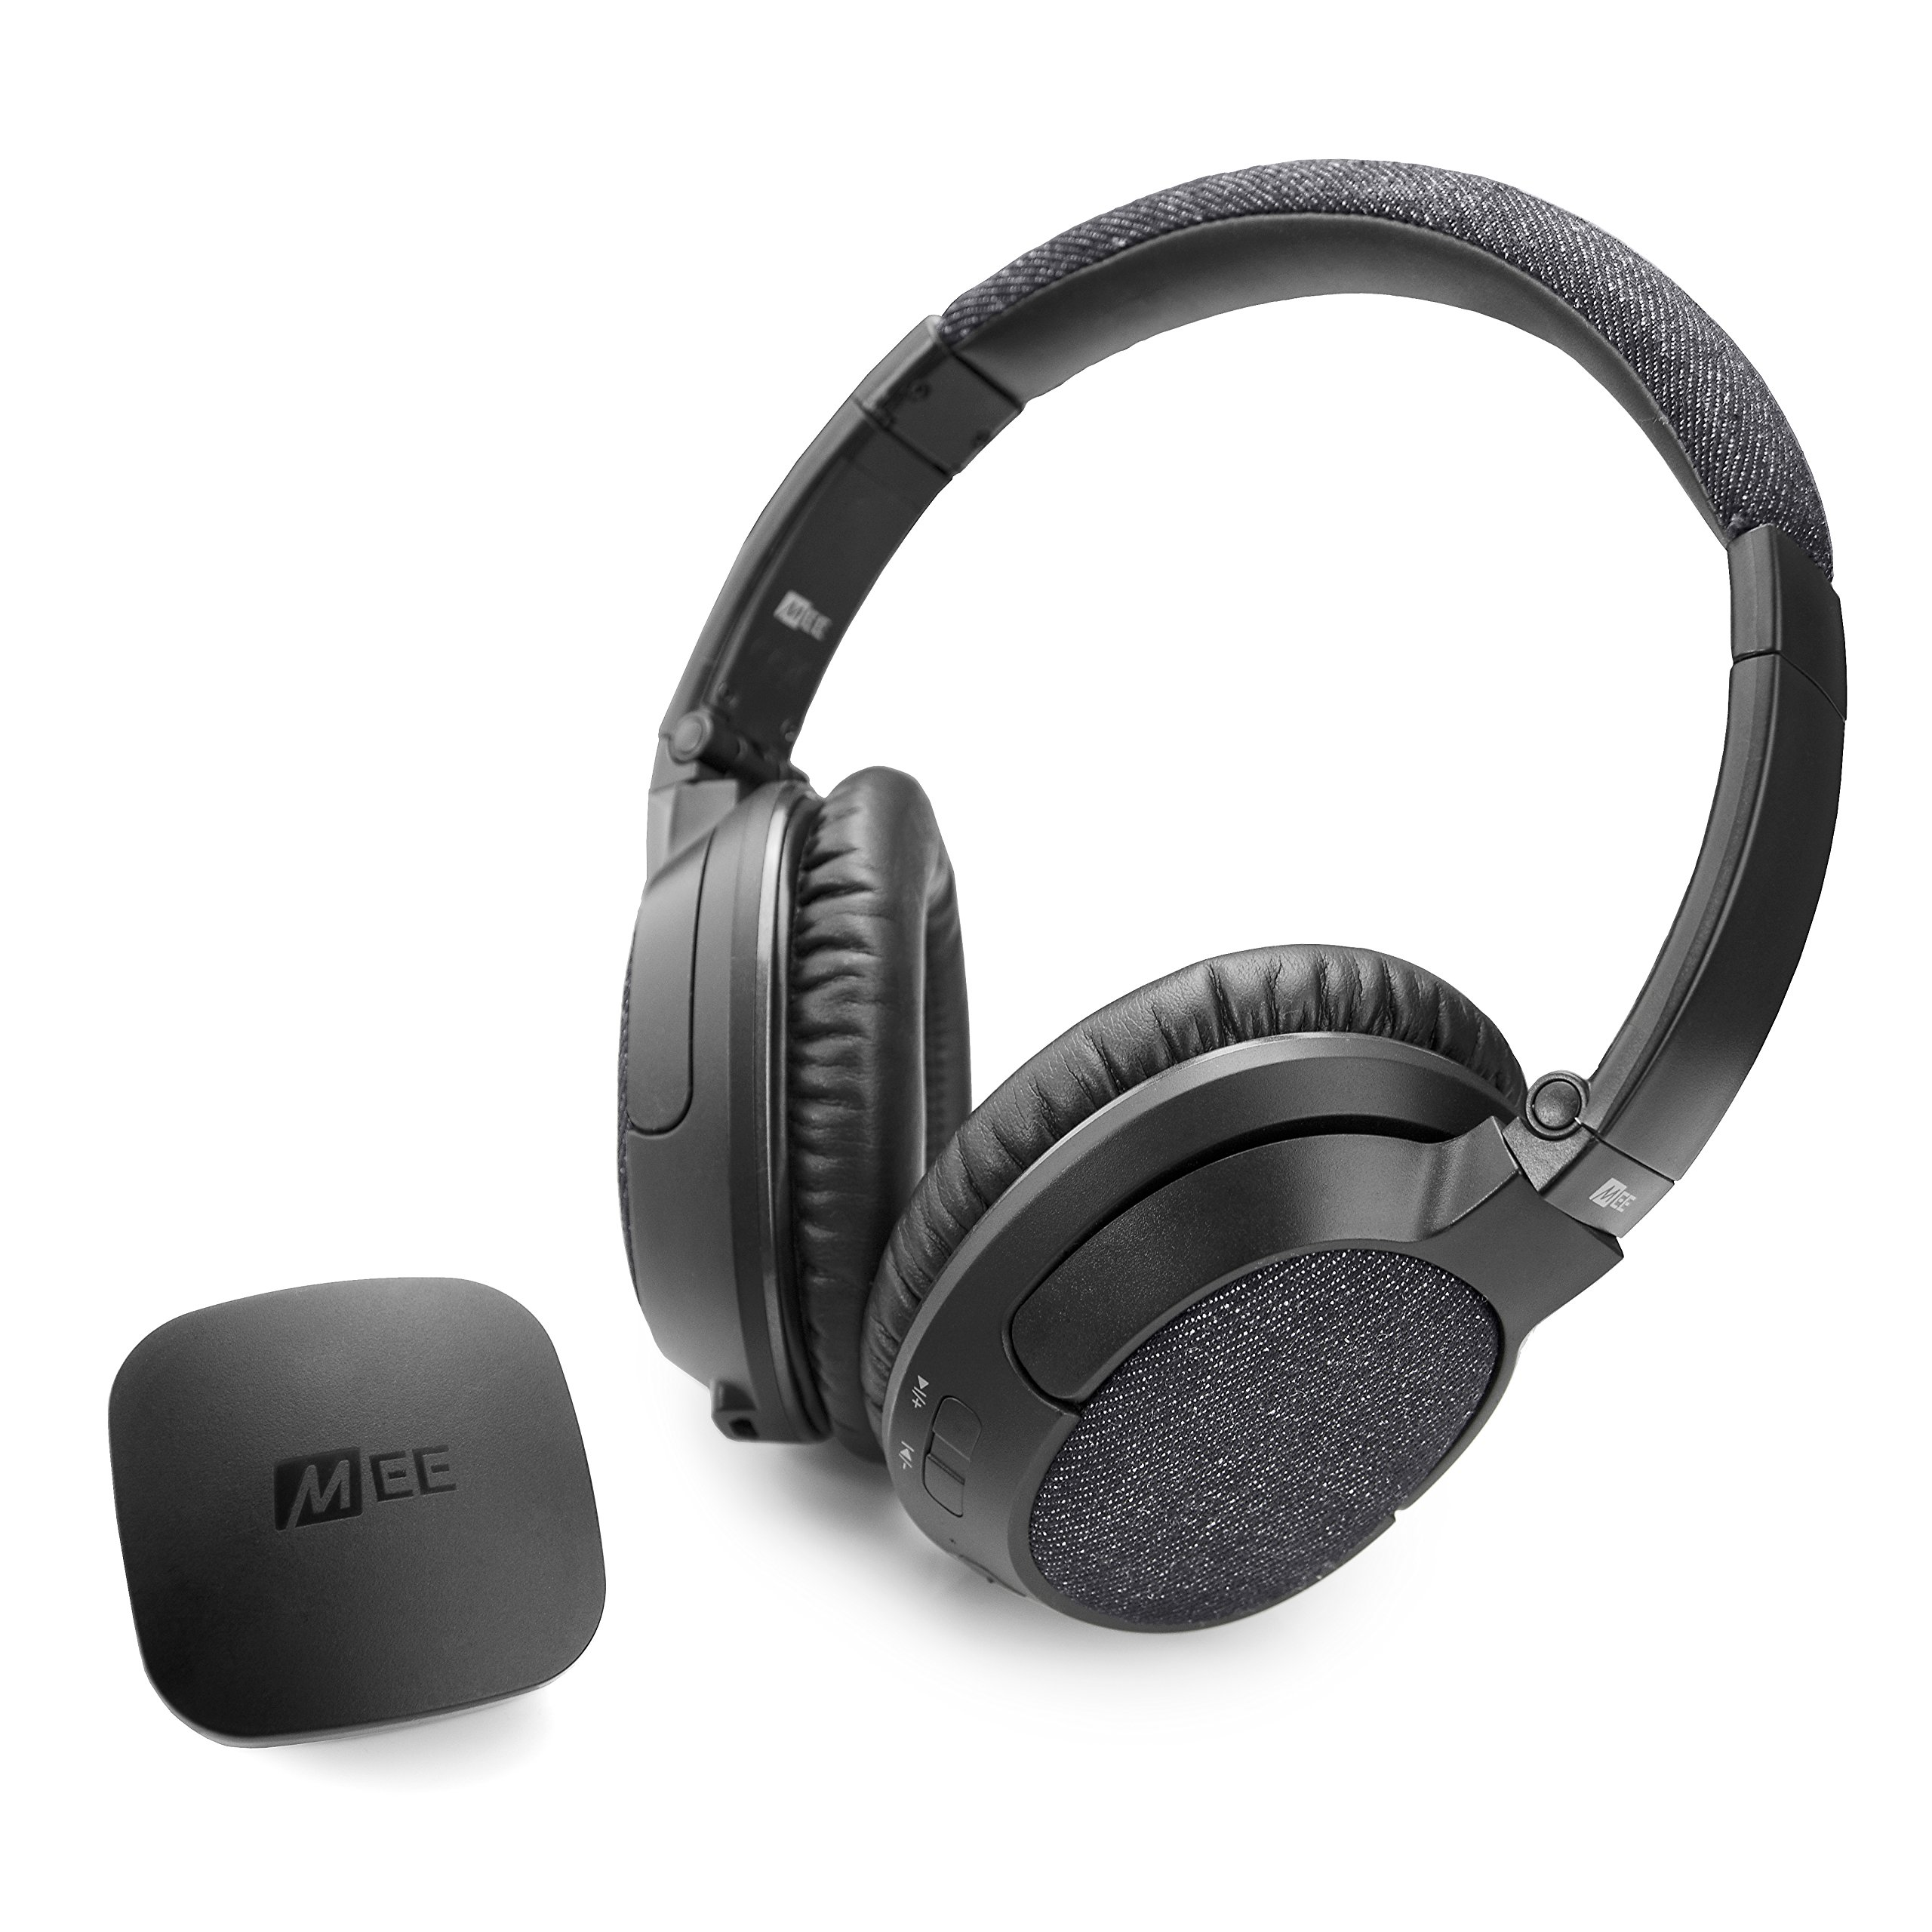 MEE audio Connect T1M3 Bluetooth Wireless Headphone System for TV - Includes Bluetooth Wireless Audio Transmitter and Matrix3 Wireless HD Headphones w/ aptX Low Latency Technology by MEE audio